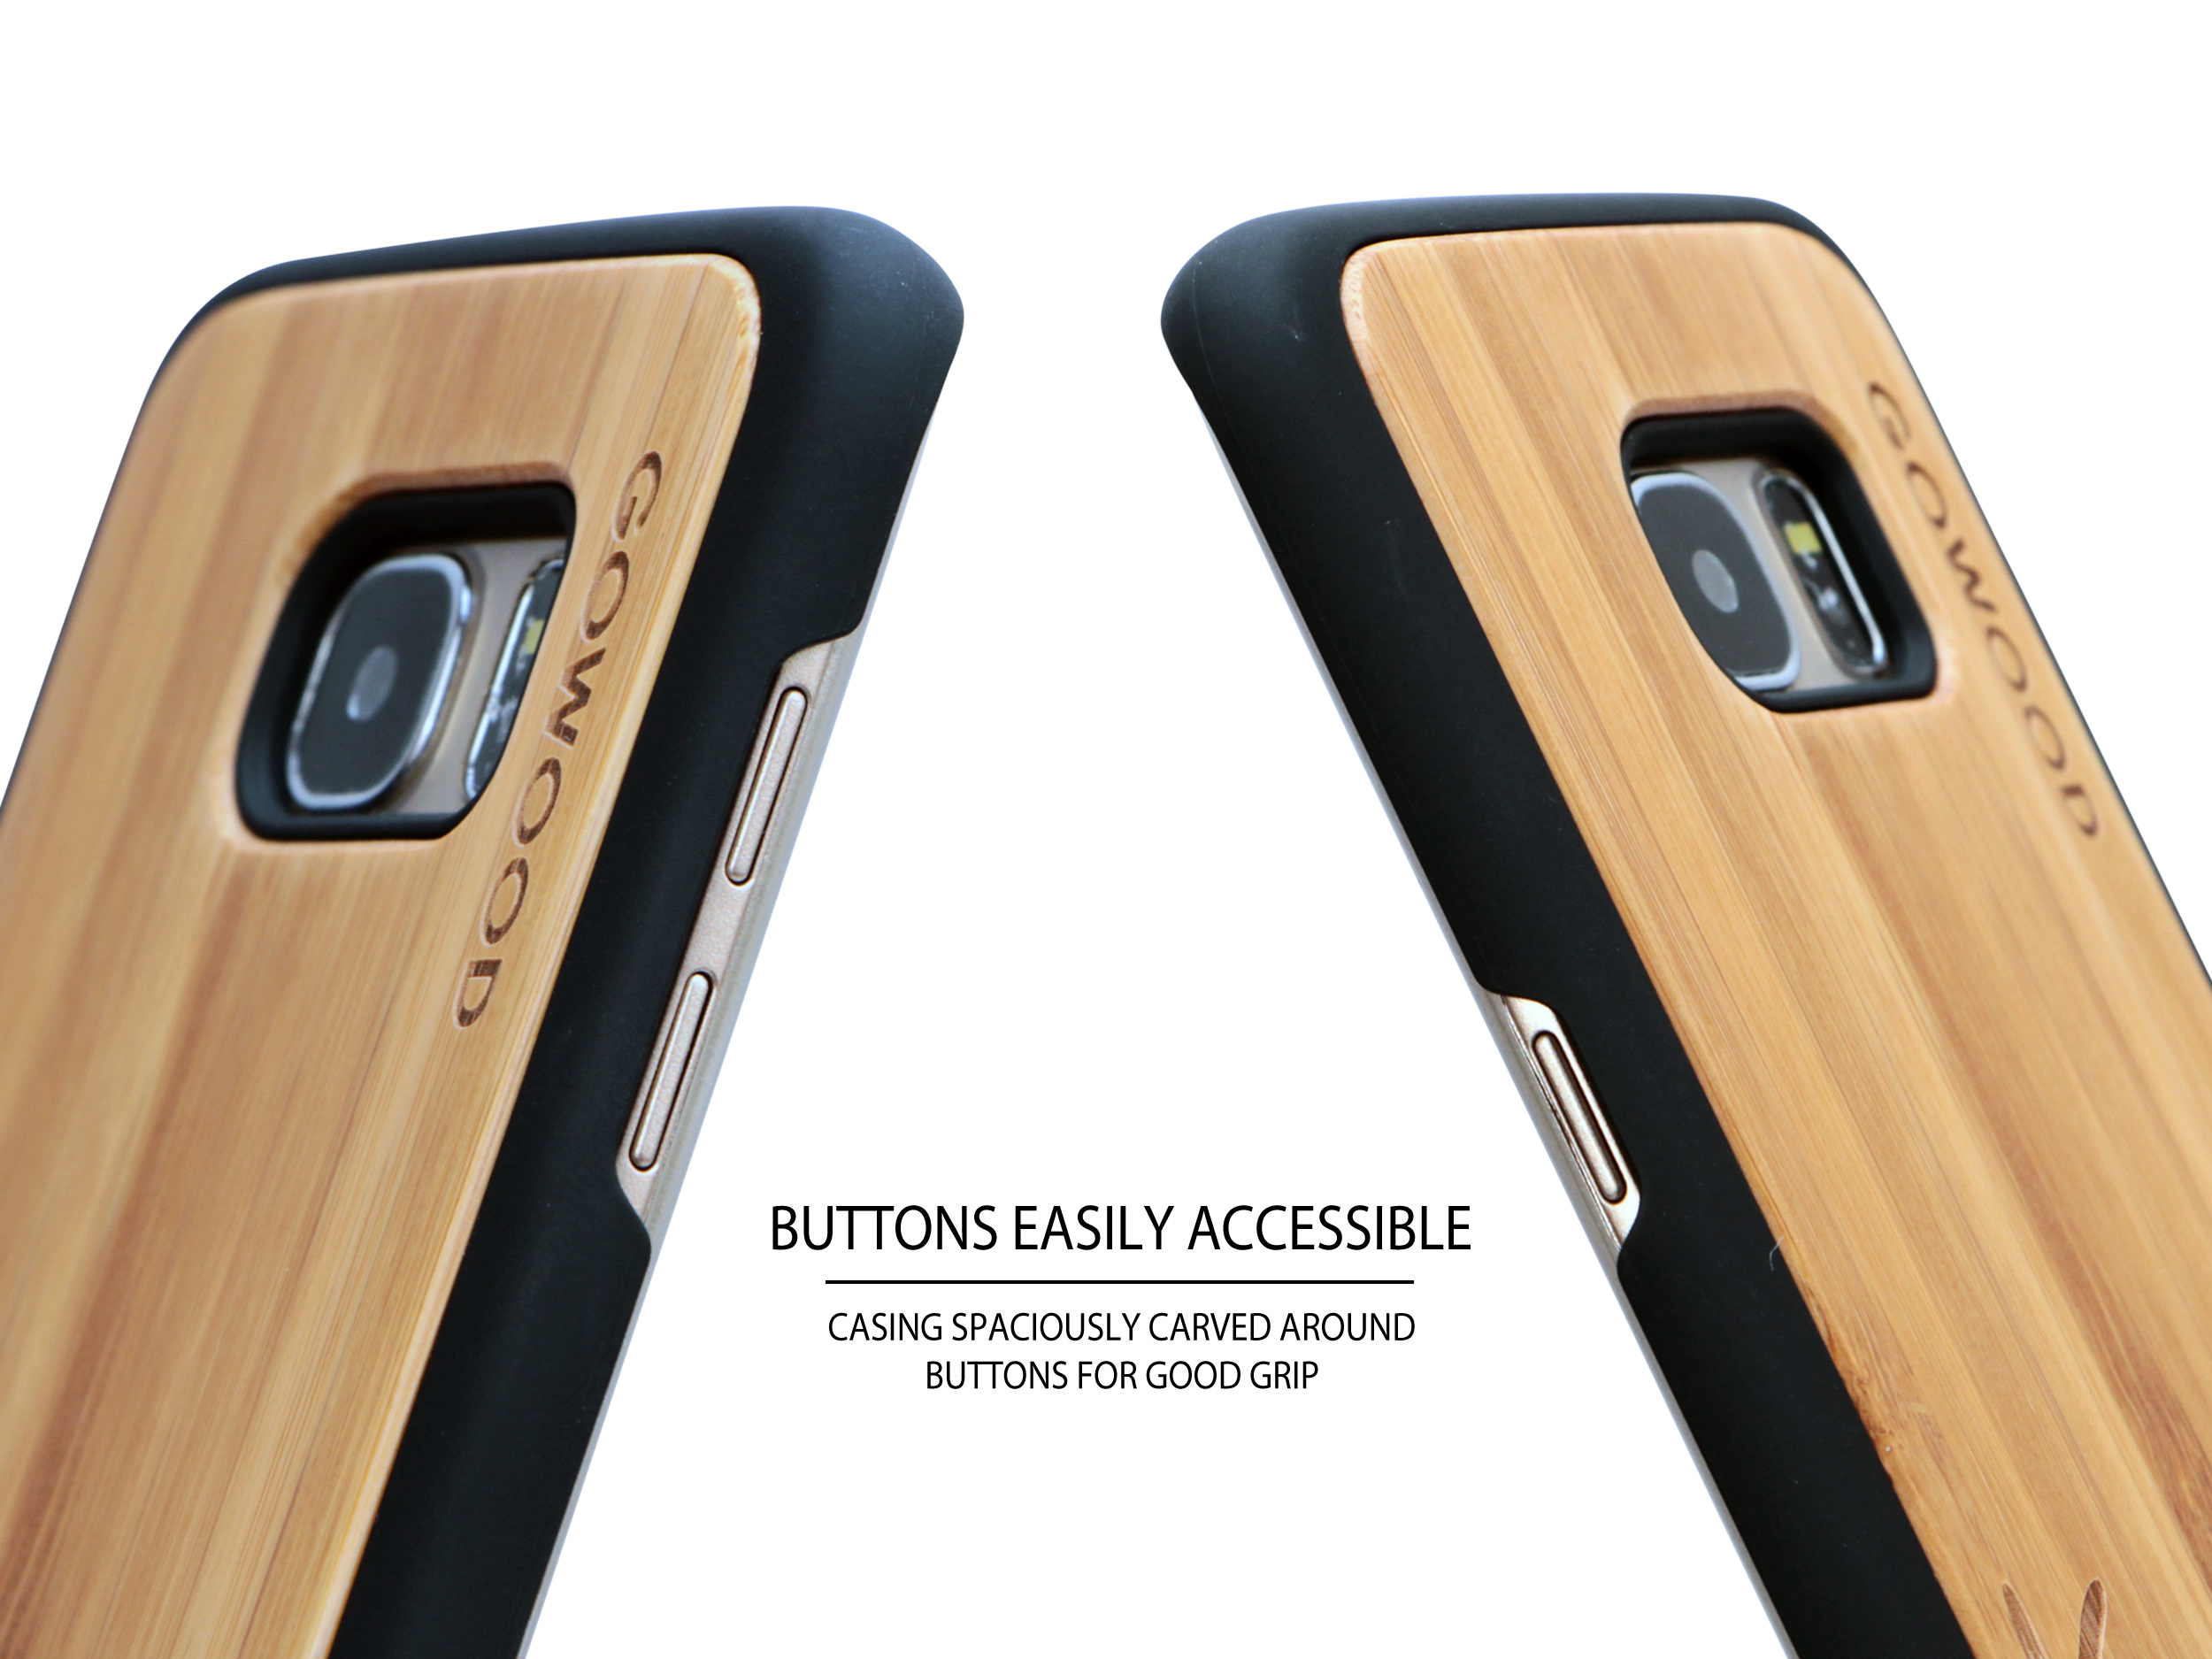 Samsung Galaxy S7 Edge wood case deer buttons